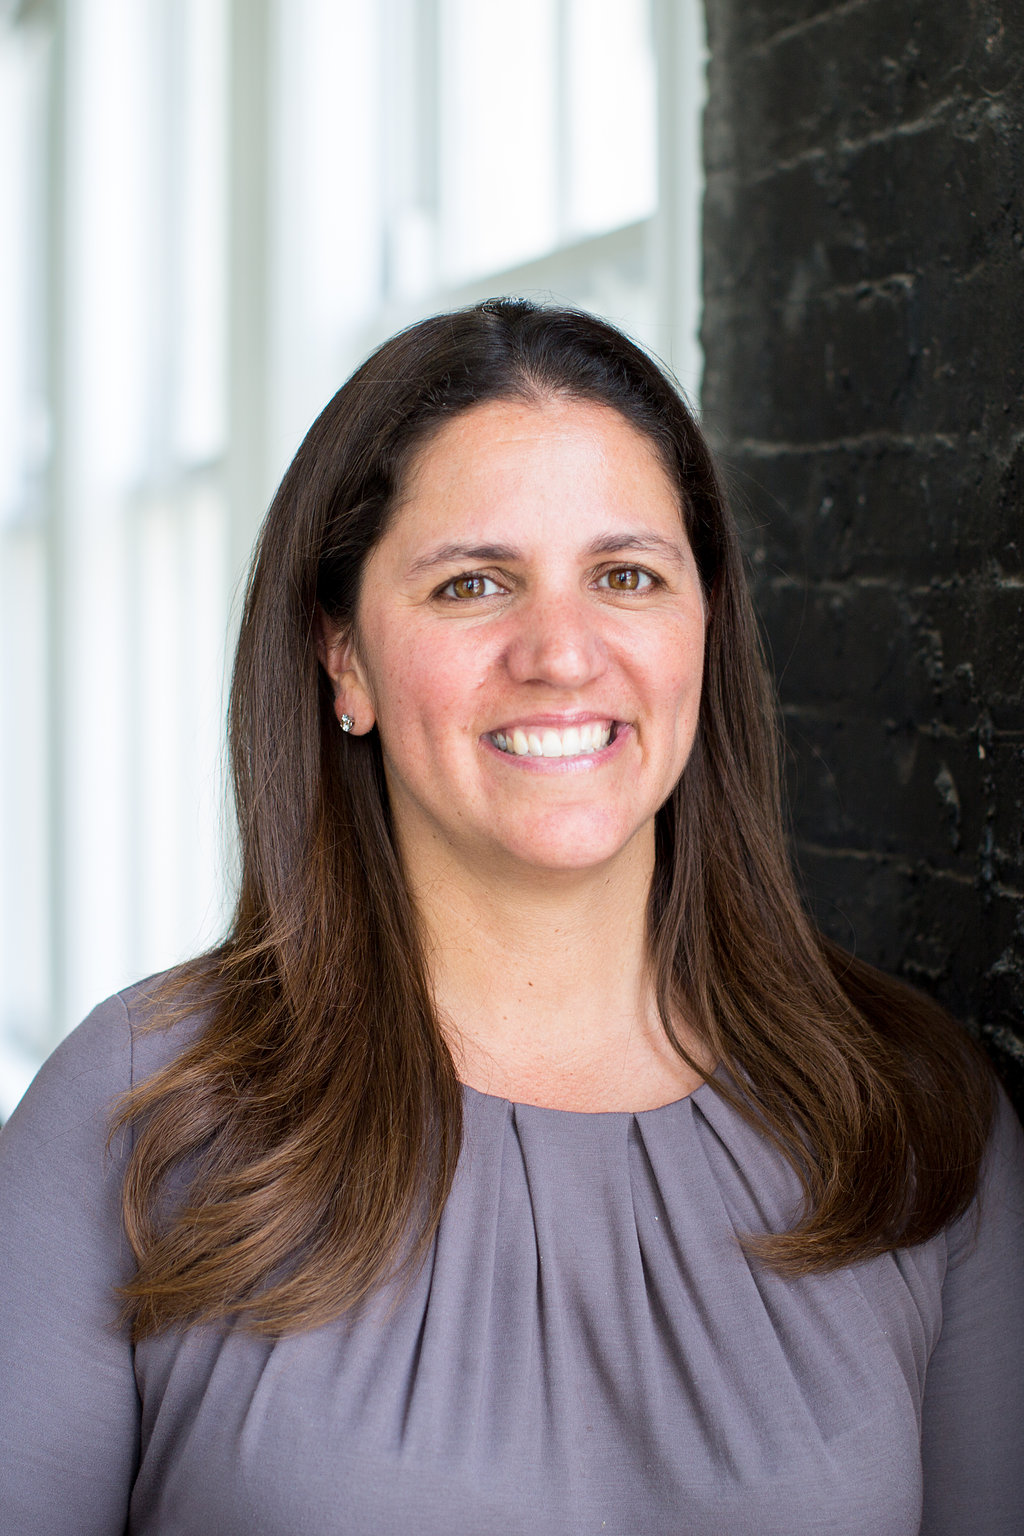 Sarah Leary, co-founder and Vice President of marketing and operations at Nextdoor